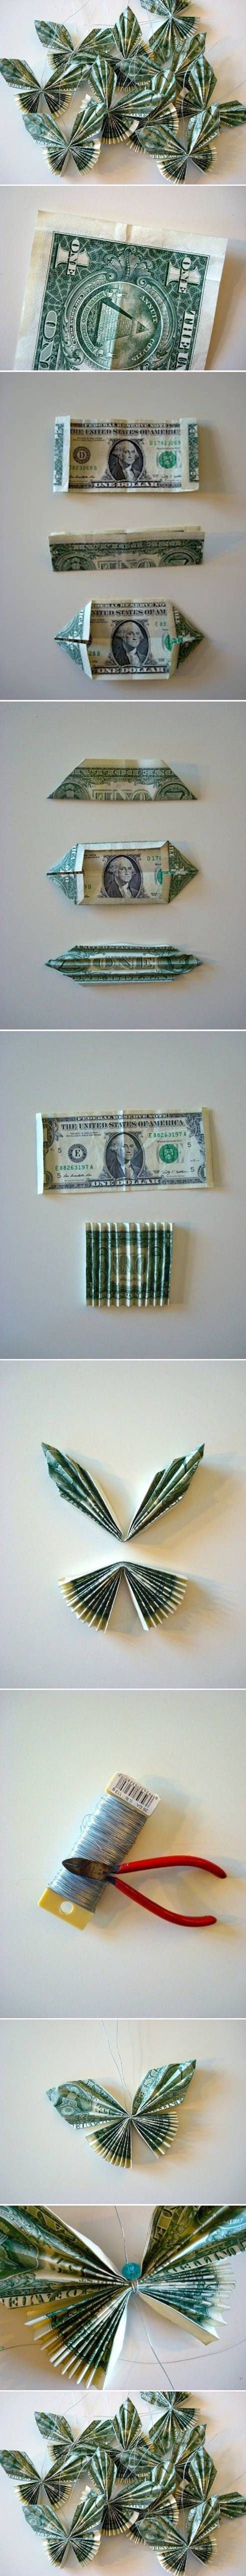 DIY Money Bill Butterfly - I don't know if I'd do them with money or pretty craft paper but I like the look!